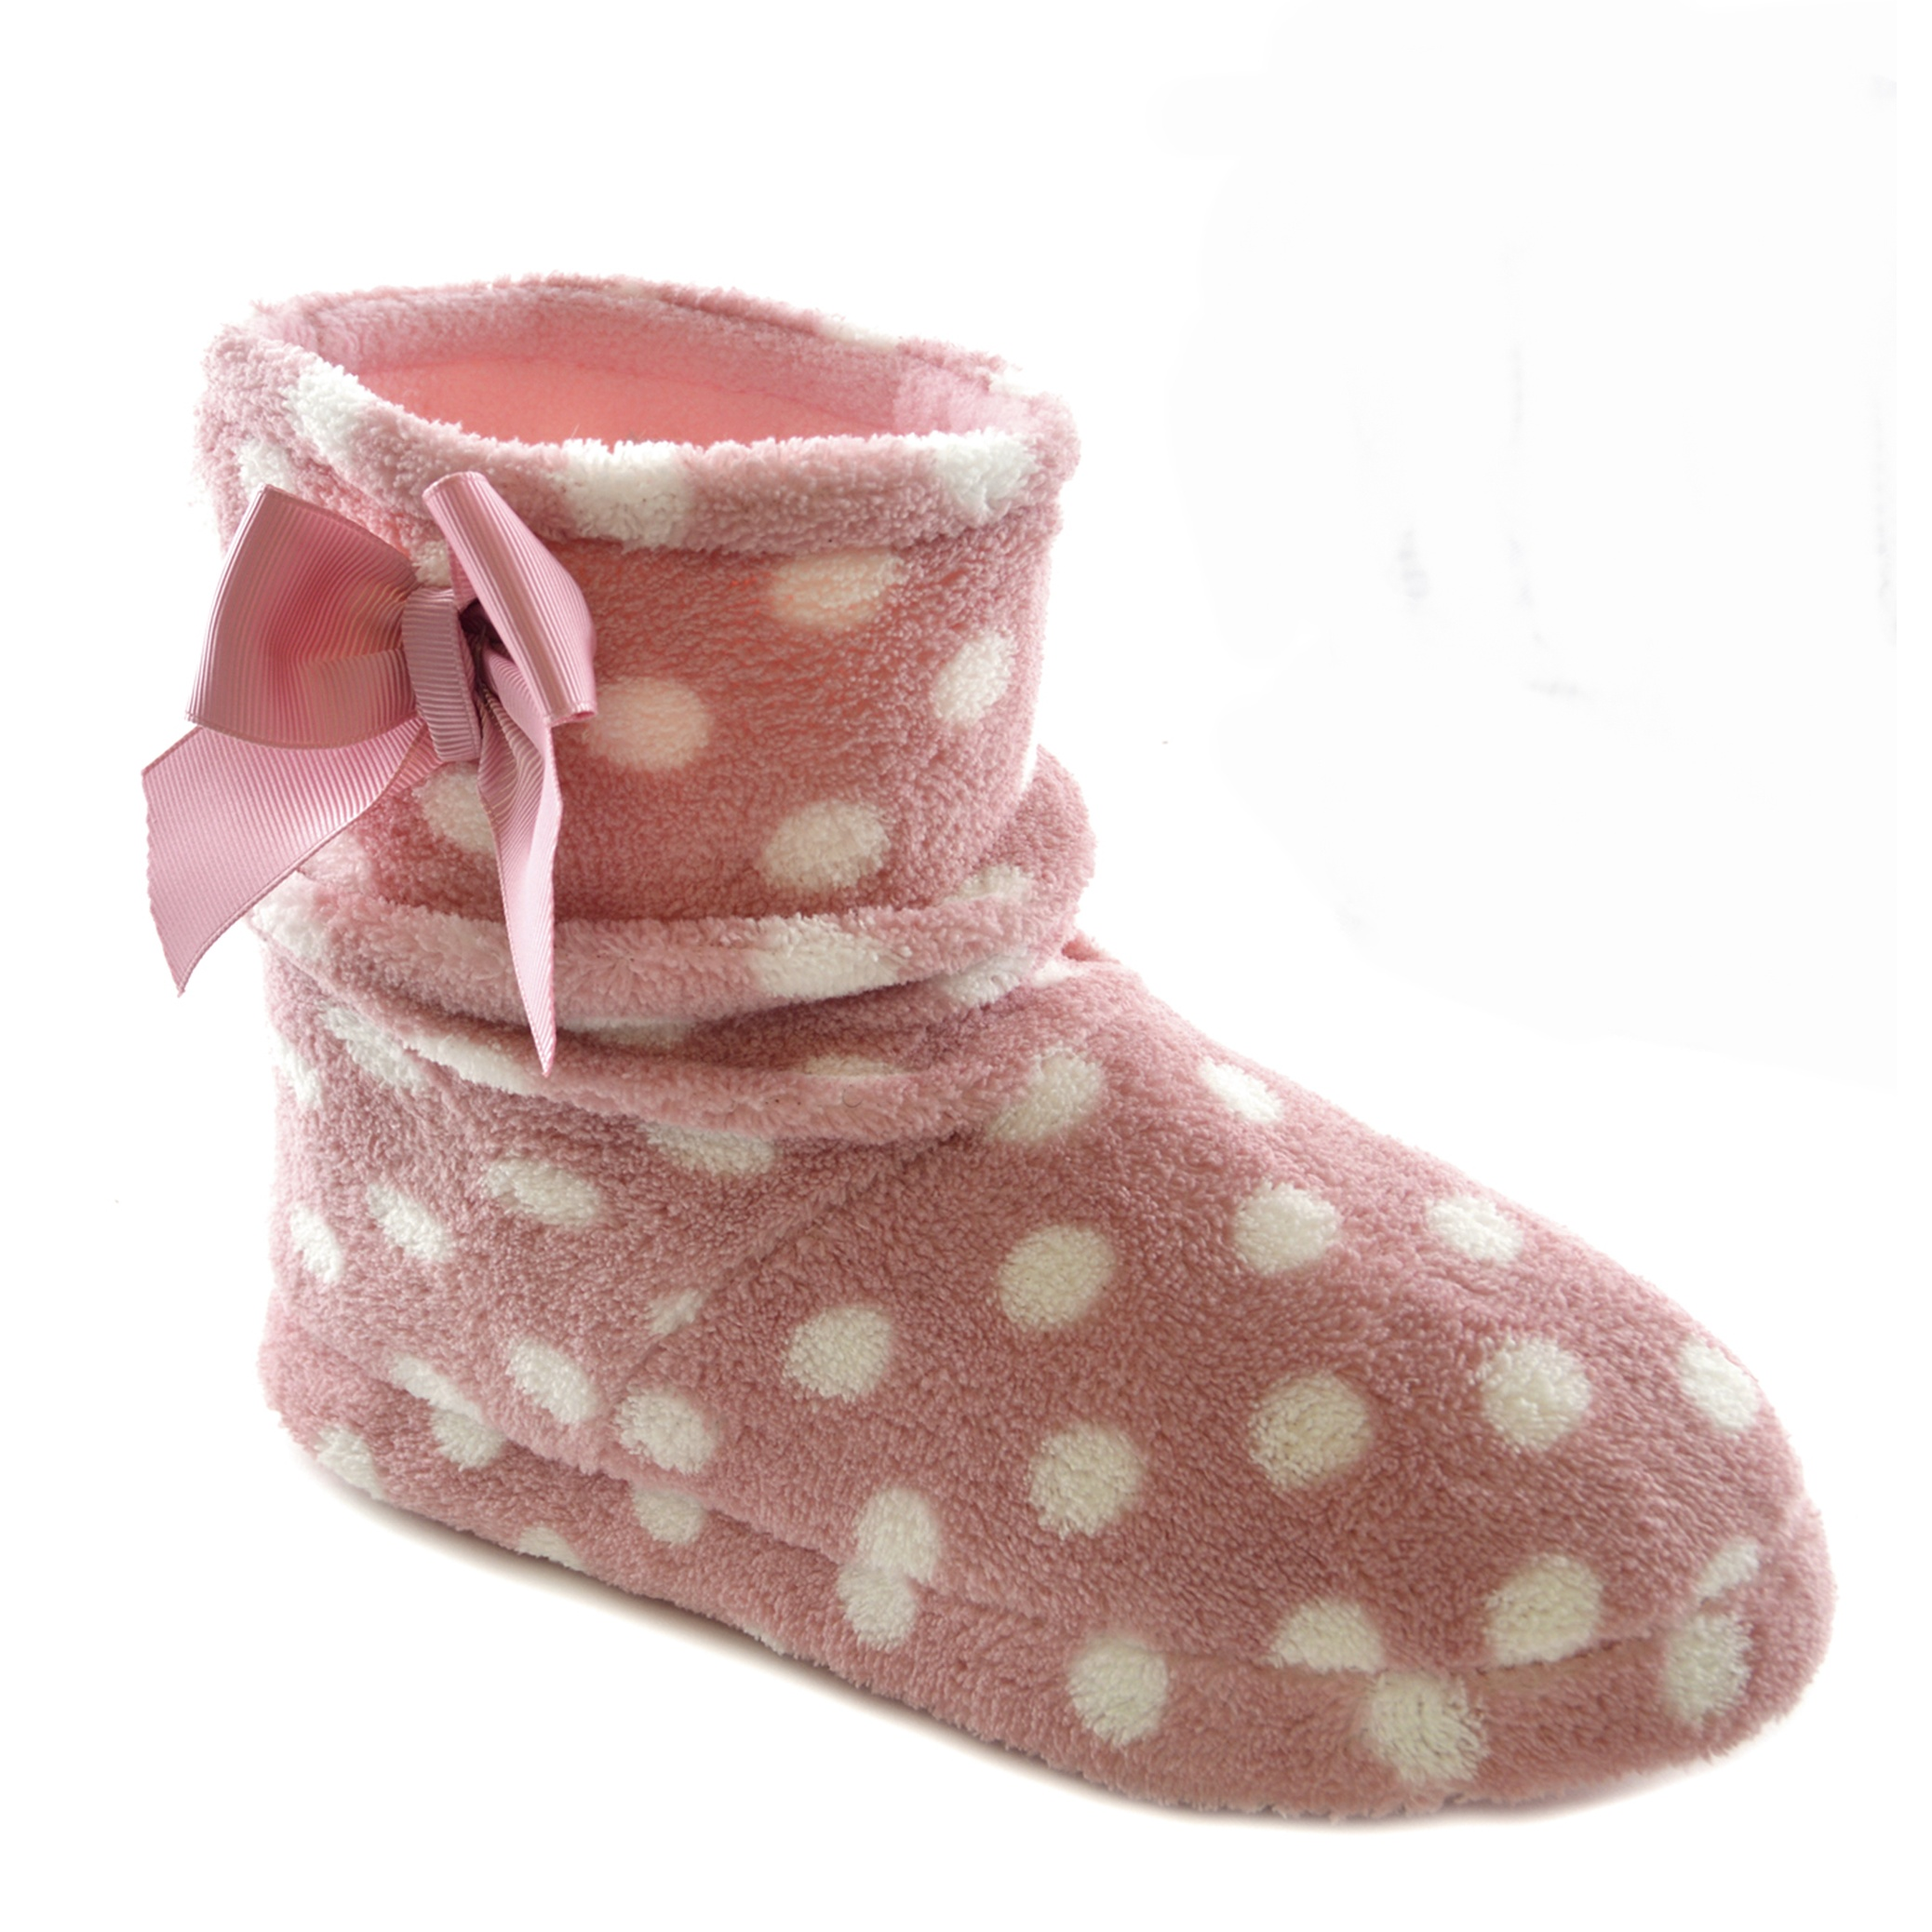 Shop for women's slippers online at DSW, where we feature a wide variety of slipper types, including moccasins, knit slippers, house shoes, slipper boots, and more.